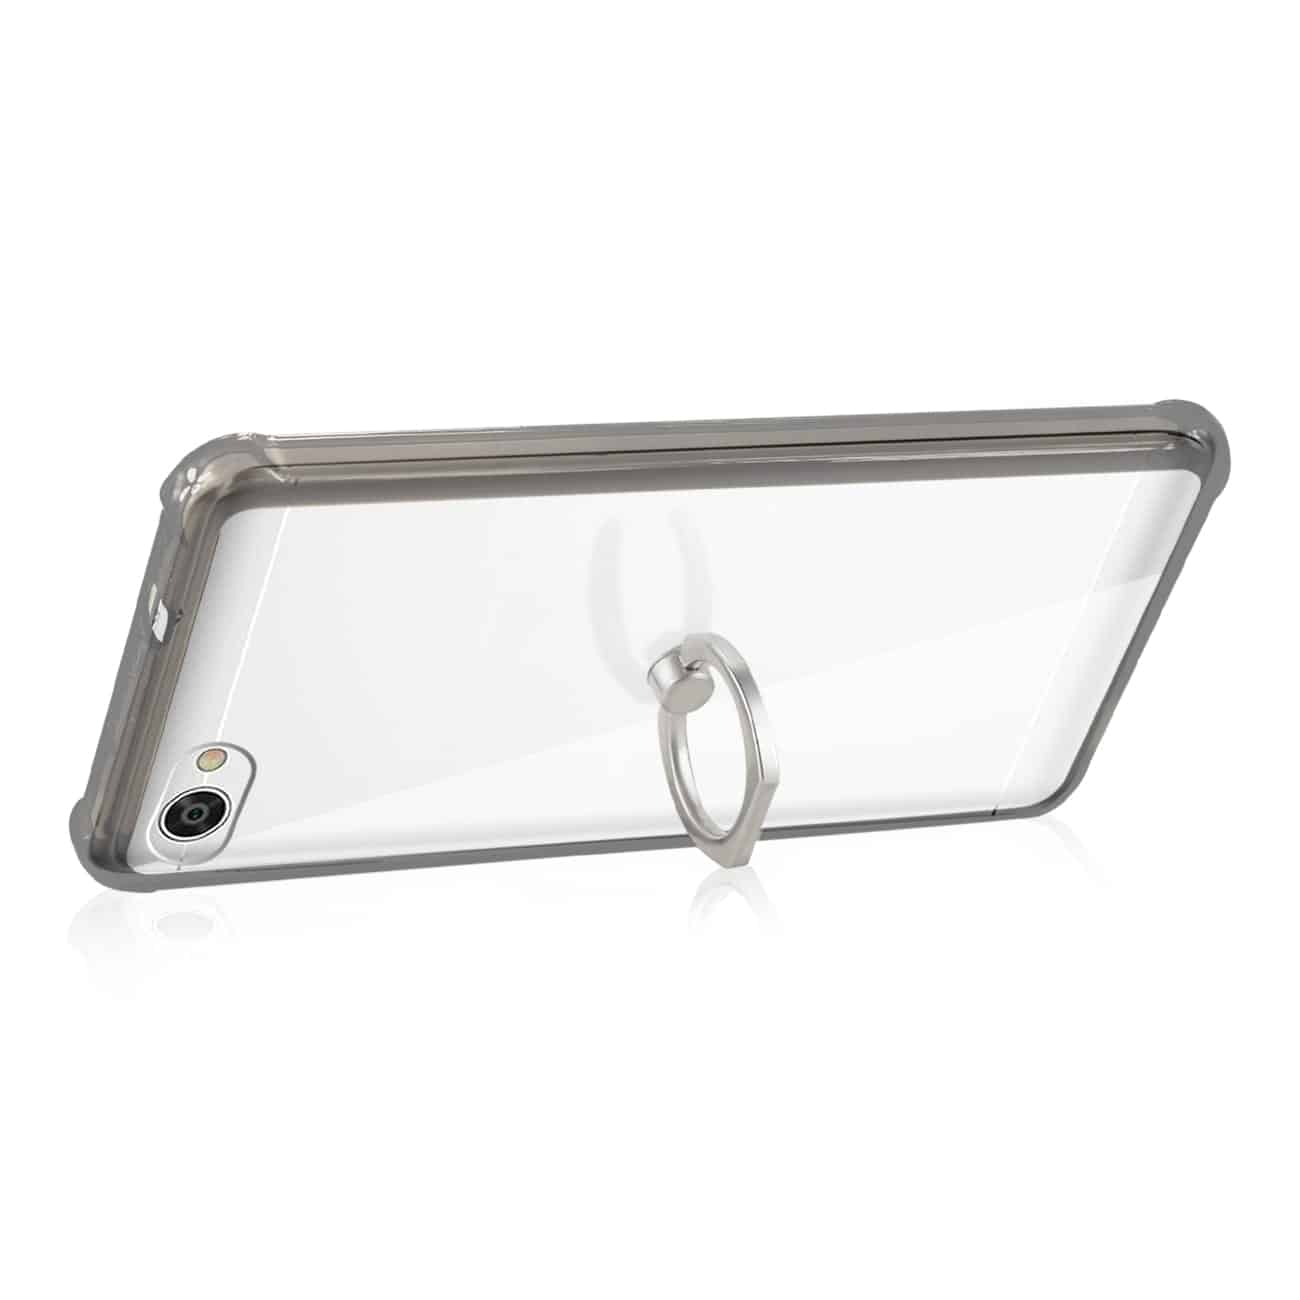 ALCATEL CRAVE TRANSPARENT AIR CUSHION PROTECTOR BUMPER CASE WITH RING HOLDER IN CLEAR BLACK